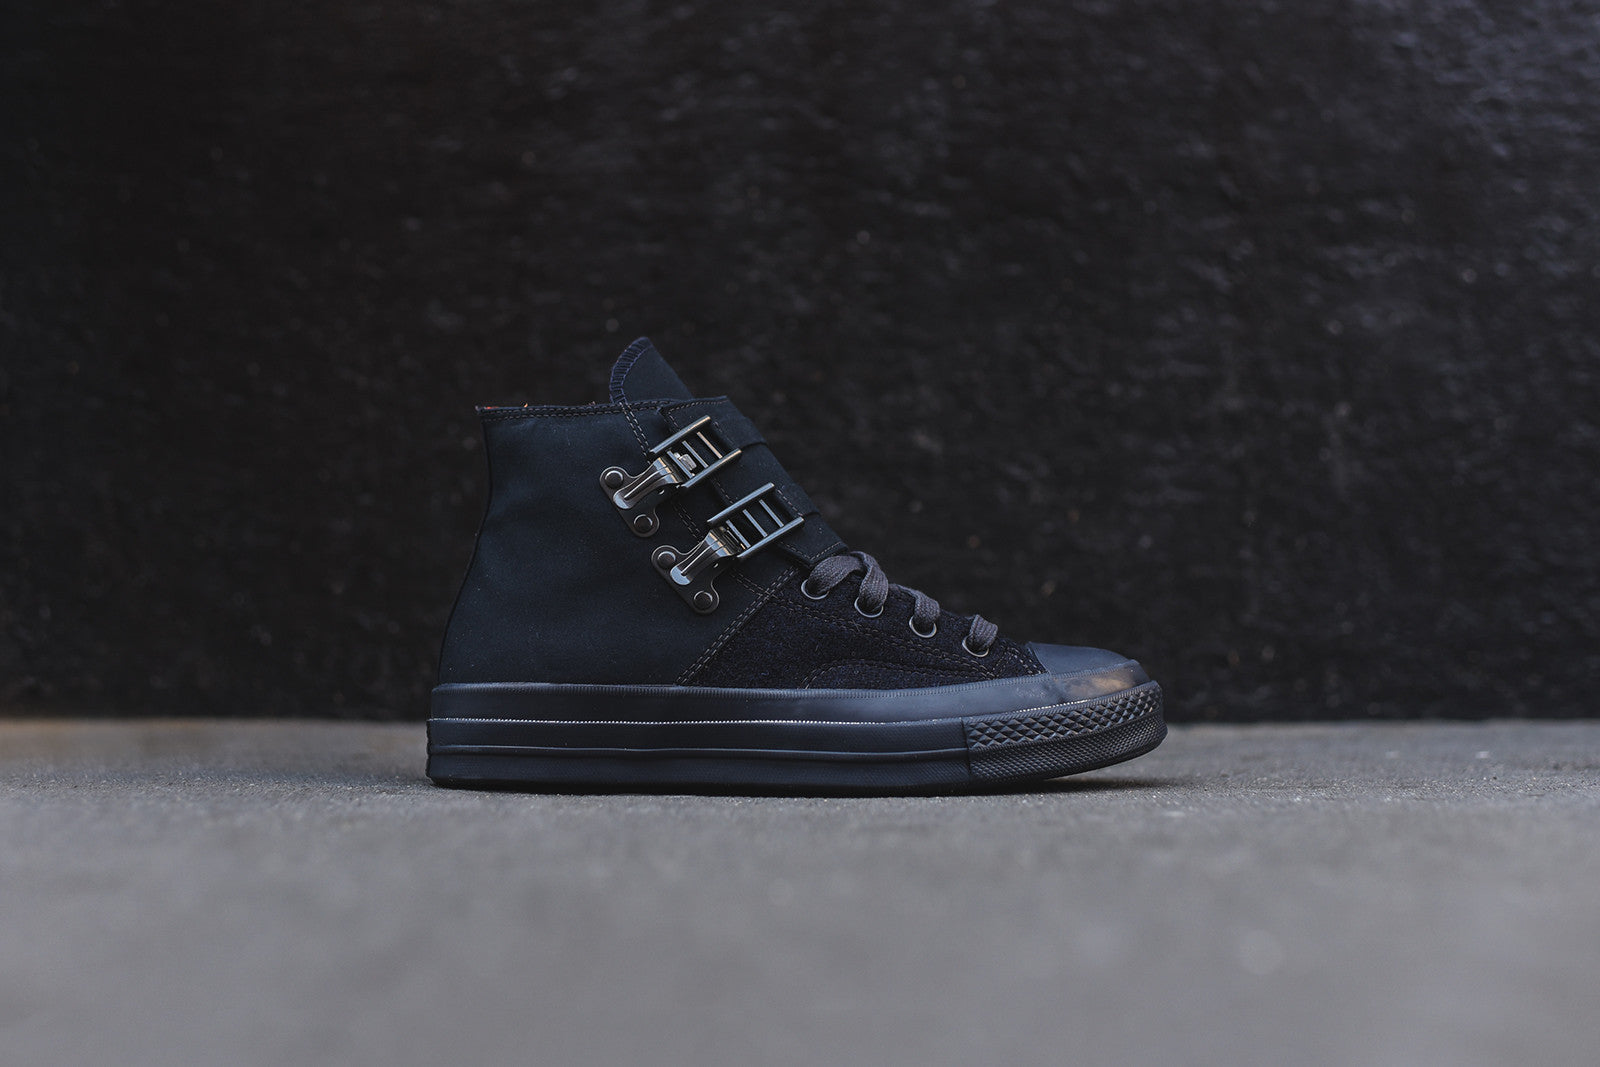 0da65321784cf3 ... Converse x Nigel Cabourn Chuck Taylor All Star High - Dark Navy Orange  ...